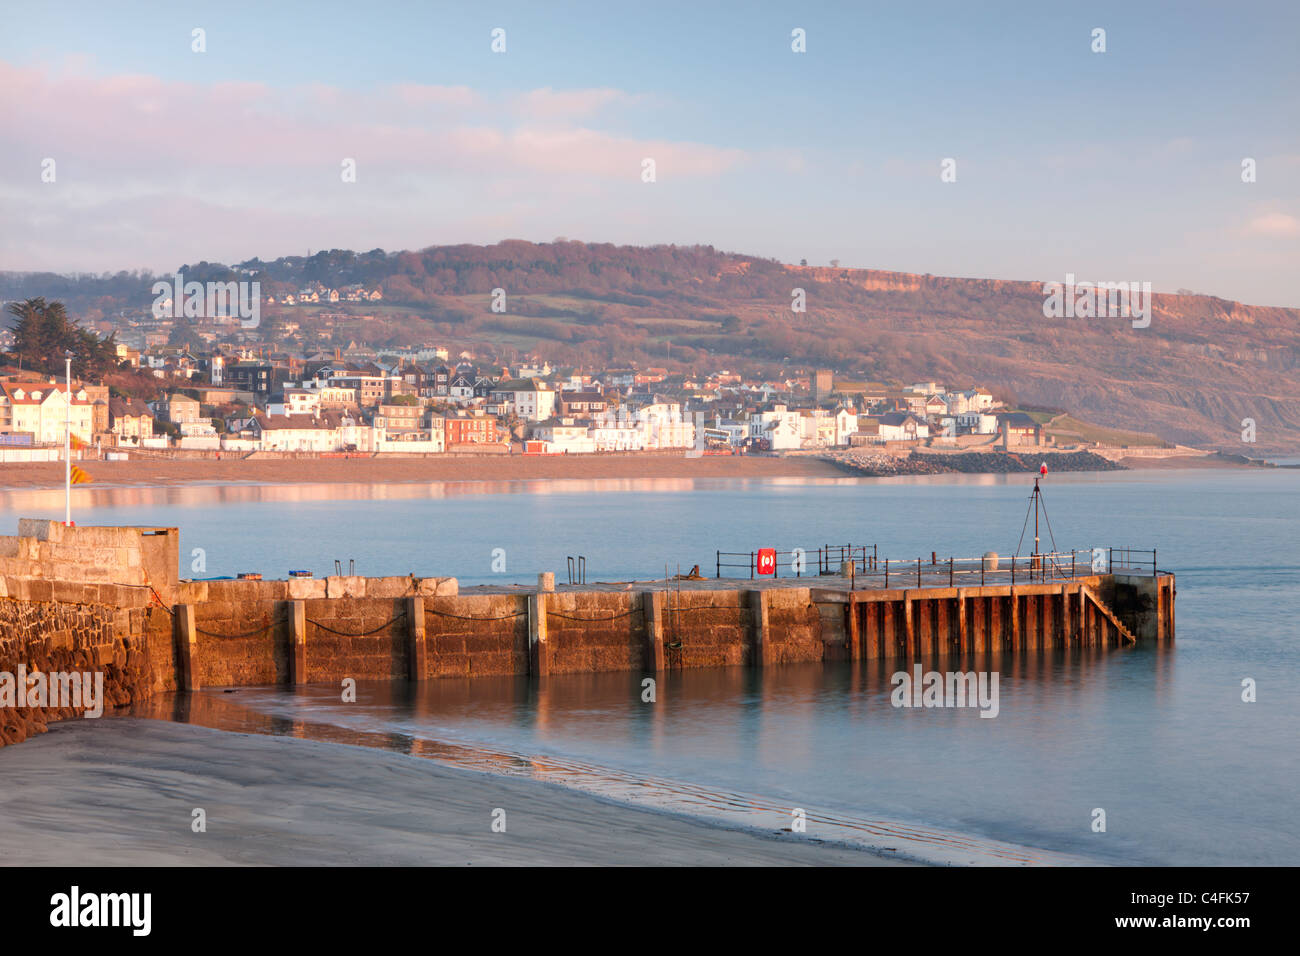 Stone quay and Lyme Regis town viewed from the Cobb, Lyme Regis, Dorset, England. Winter (December) 2010. - Stock Image